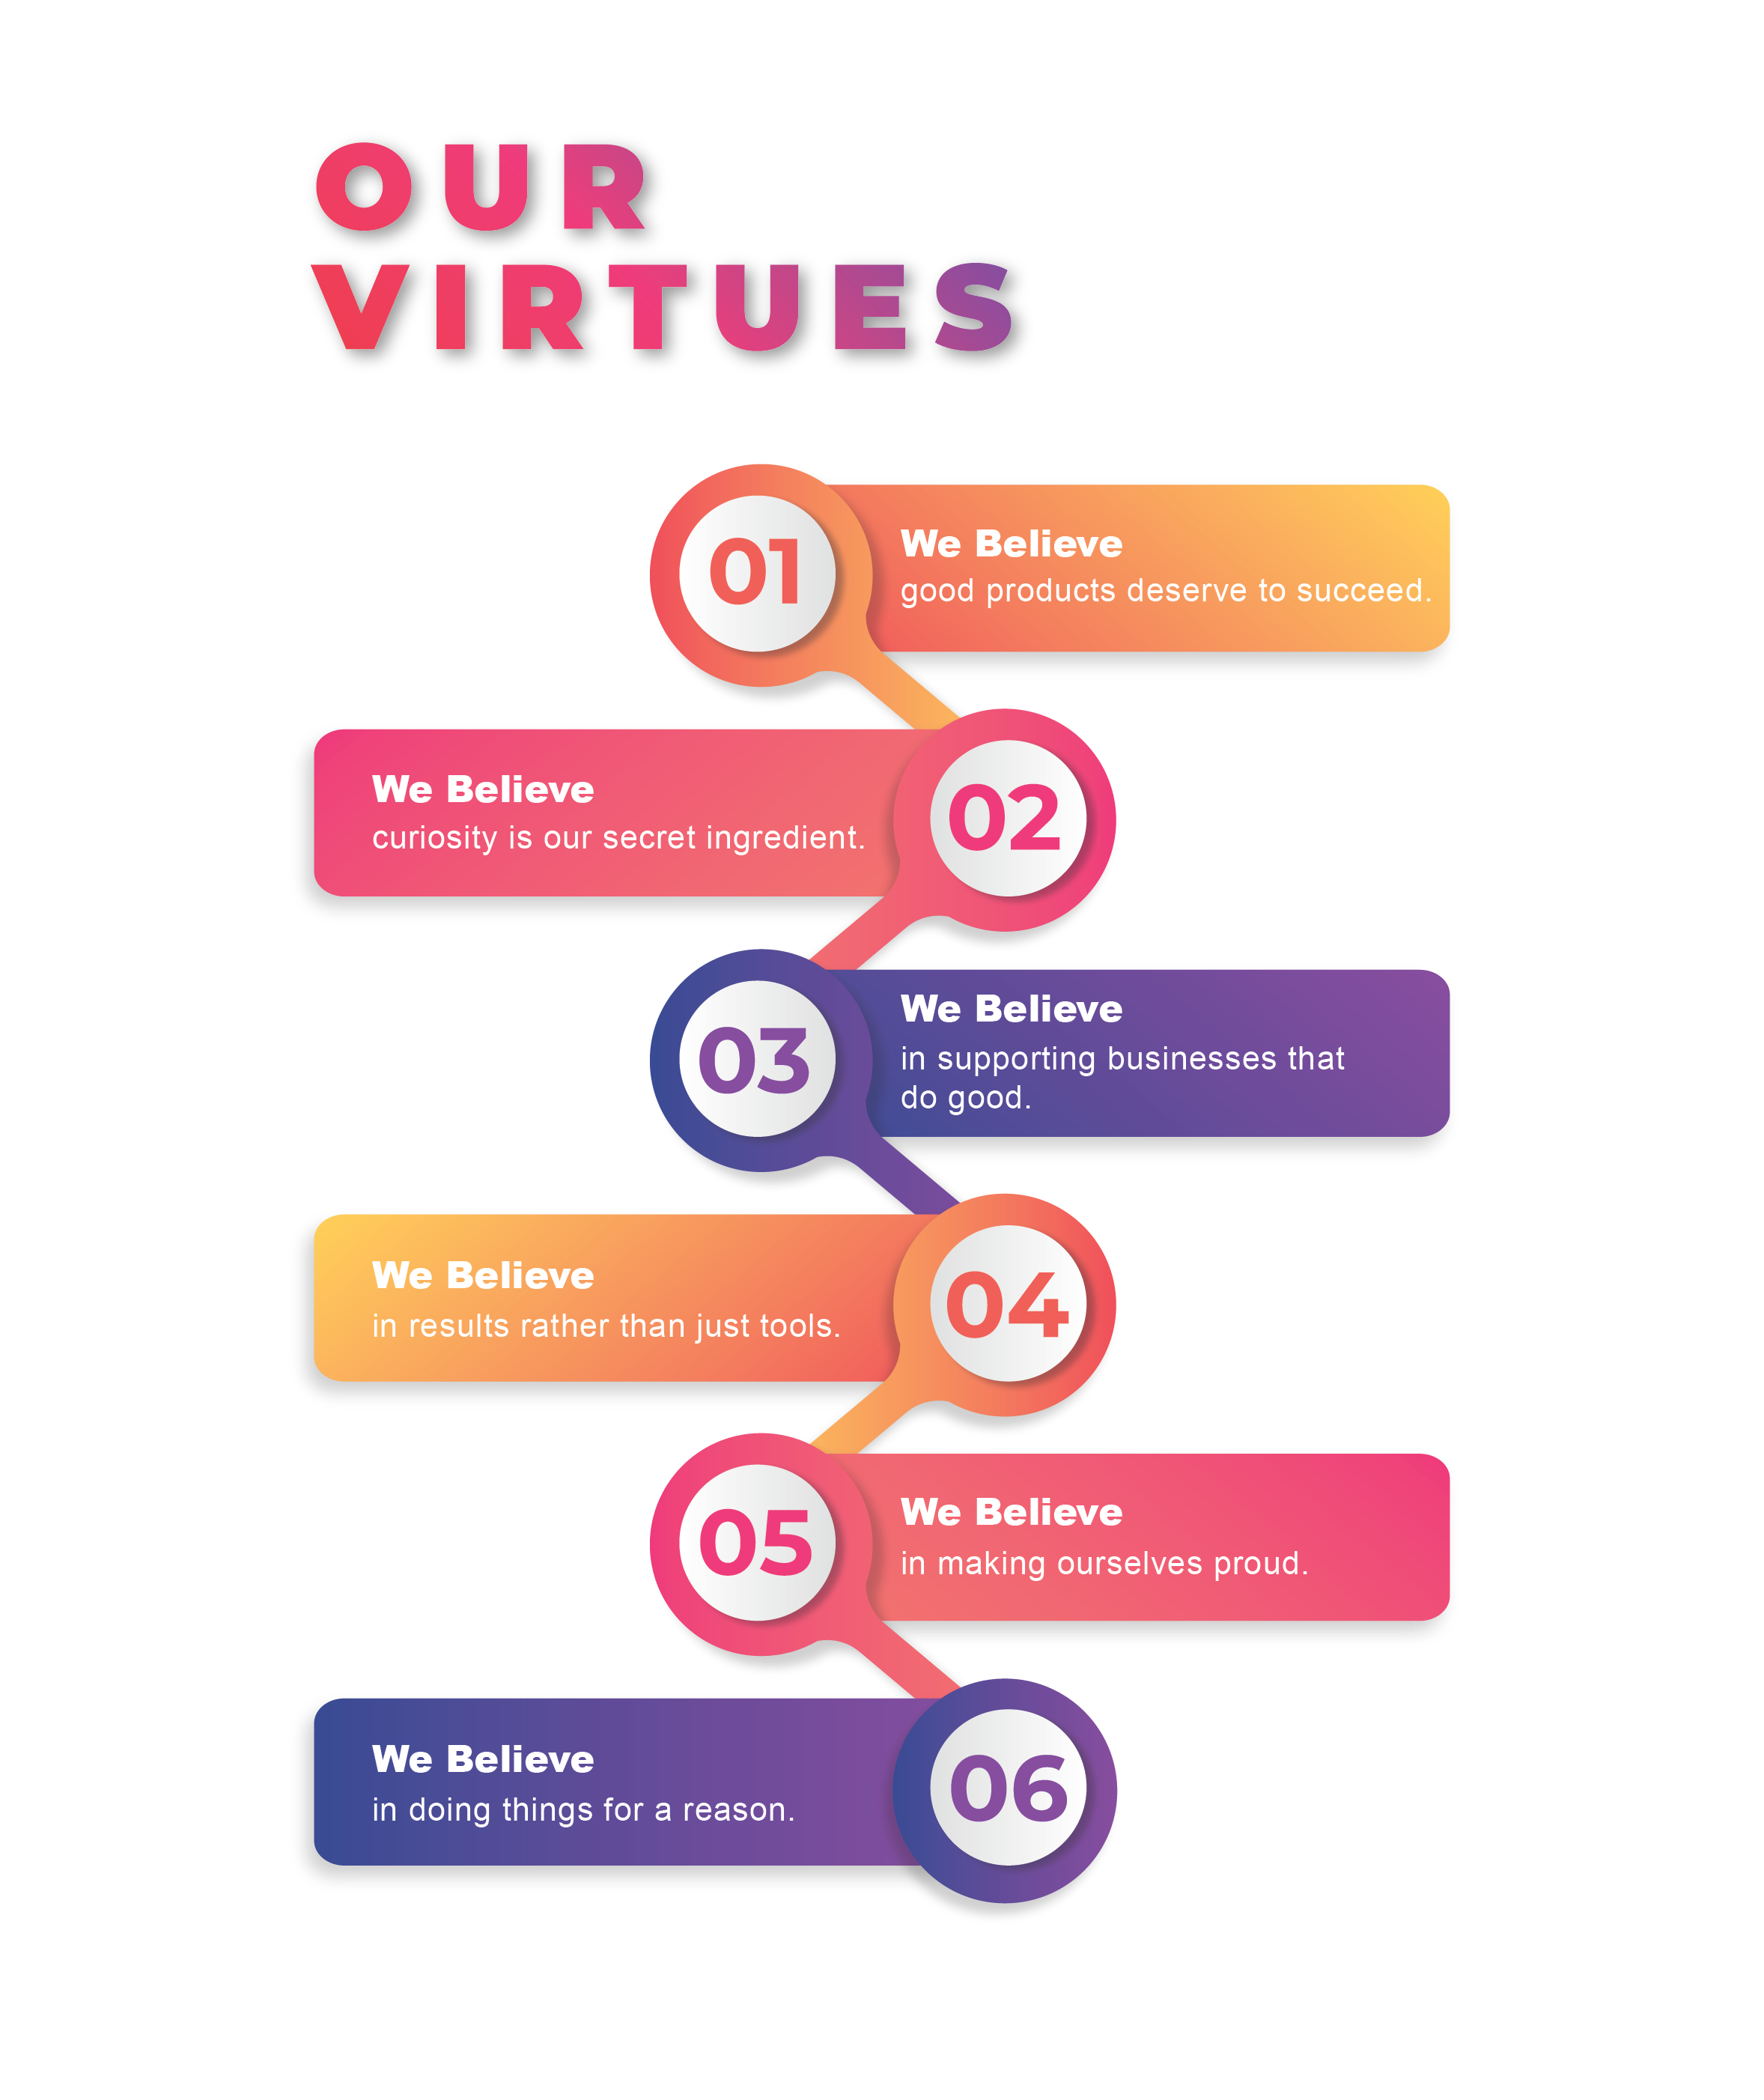 our-virtues-1004-02-1